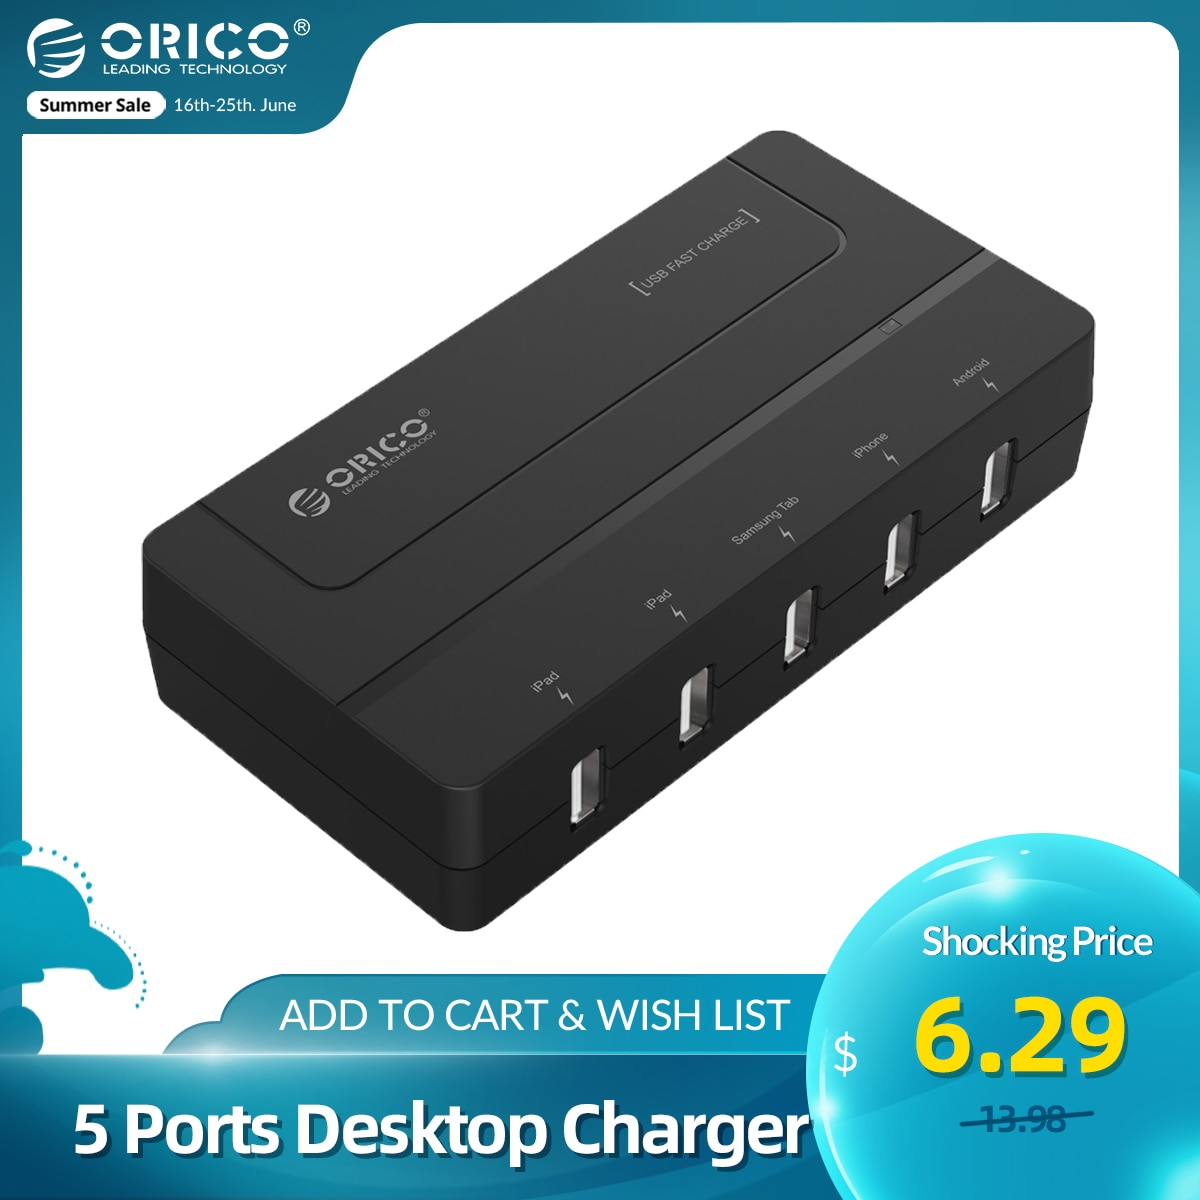 AliExpress - ORICO 5 Ports Desktop Charger USB Fast Charger 5V 6A Max 30W for Huawei Xiaomi iPhone iPad Android Samsung Tab Galaxy S6 Black